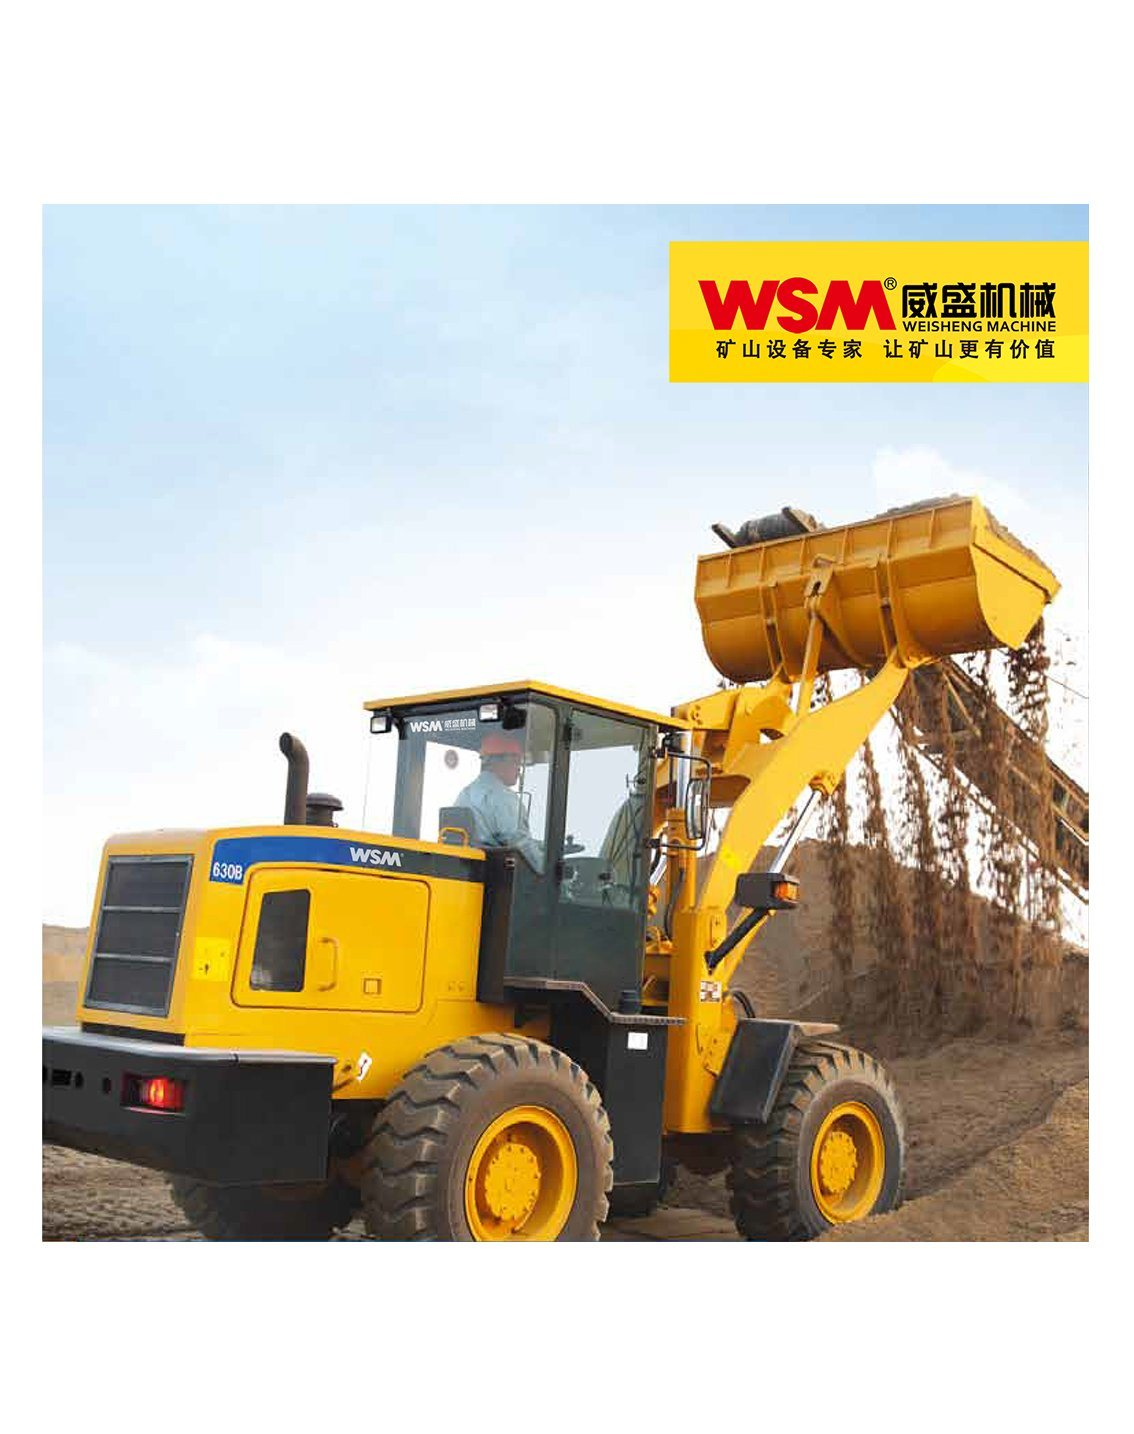 5 Tons Wheel Loader with Different Accessory Bucket 3 M3 with Ce Certificate